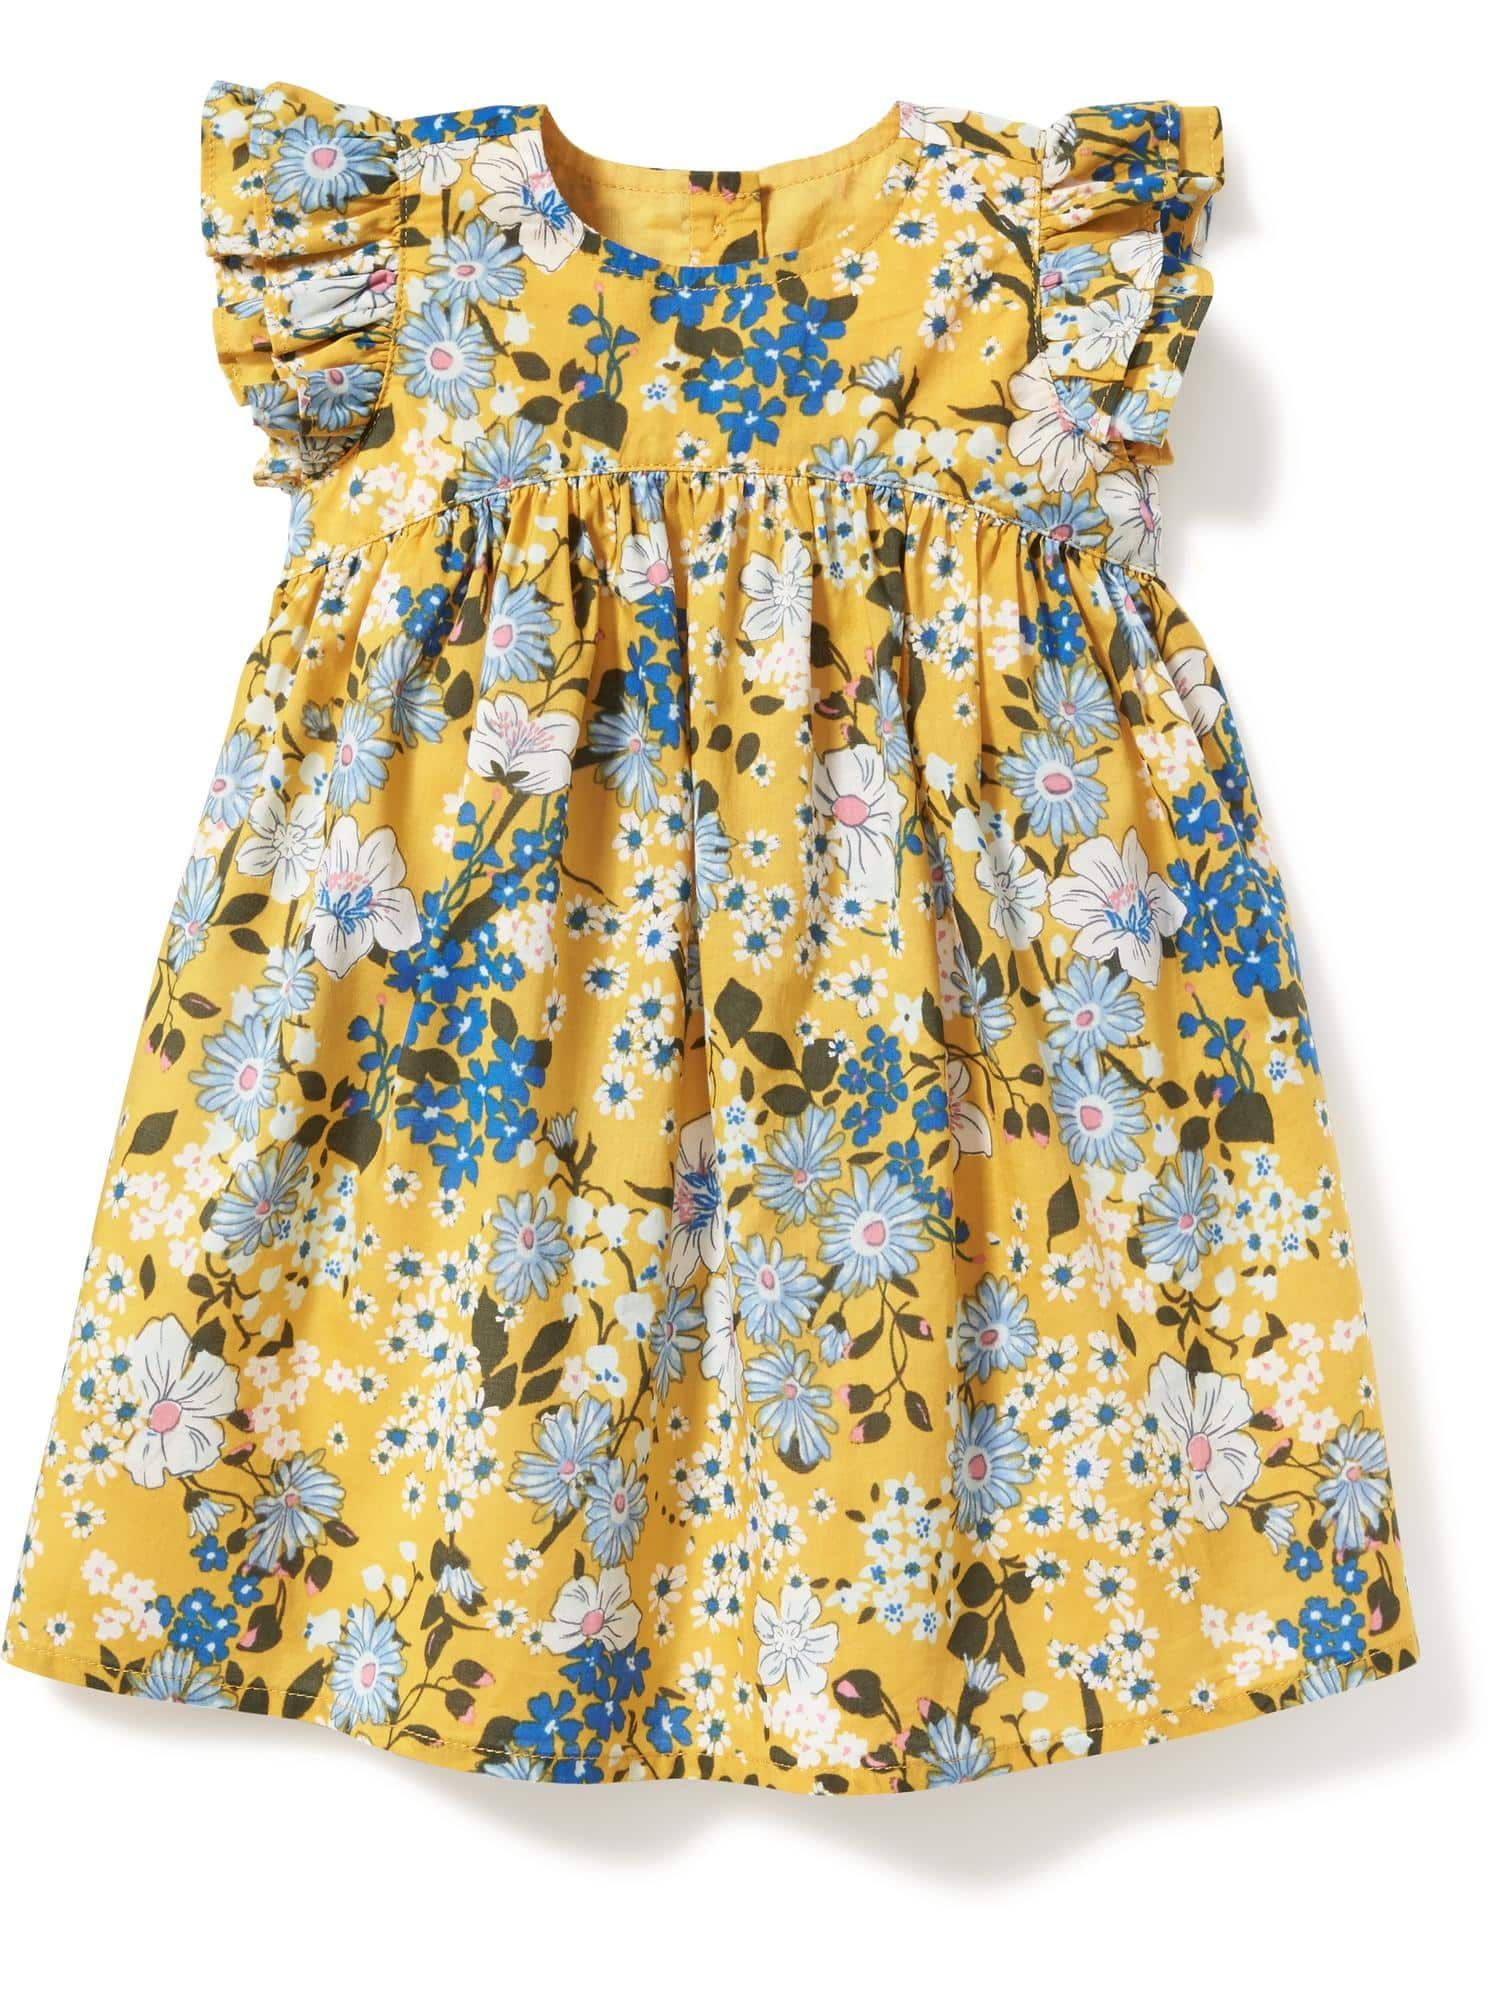 Floral Print Flutter Sleeve Dress for Baby MIA style